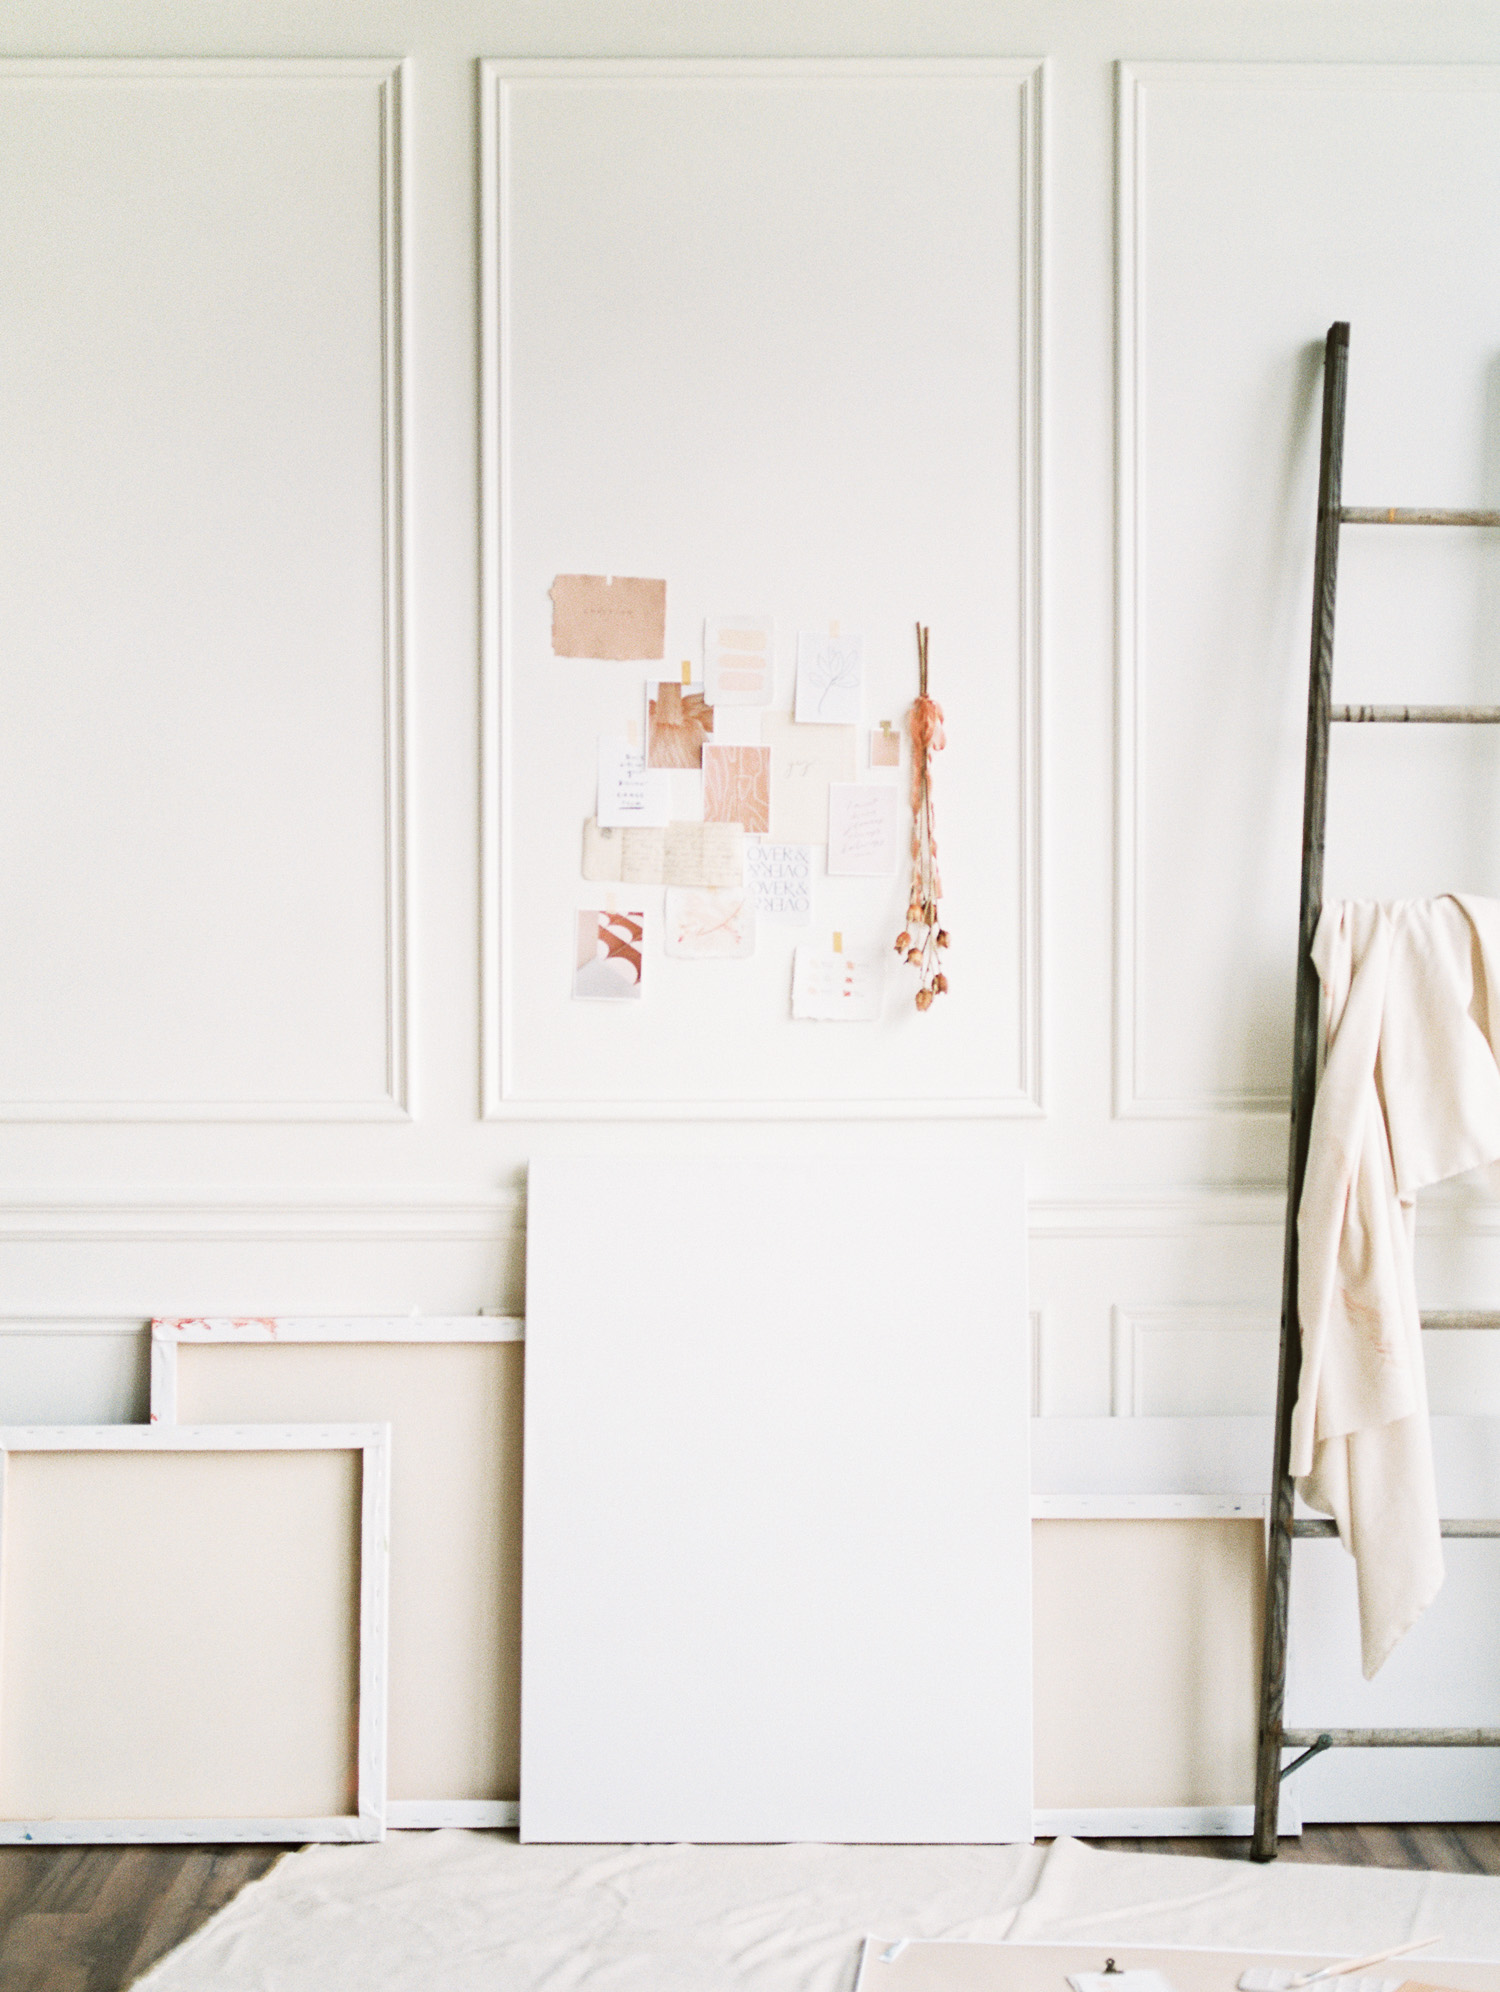 an artist studio space with a painter aesthetic created for a brand photoshoot in Detroit, Michigan